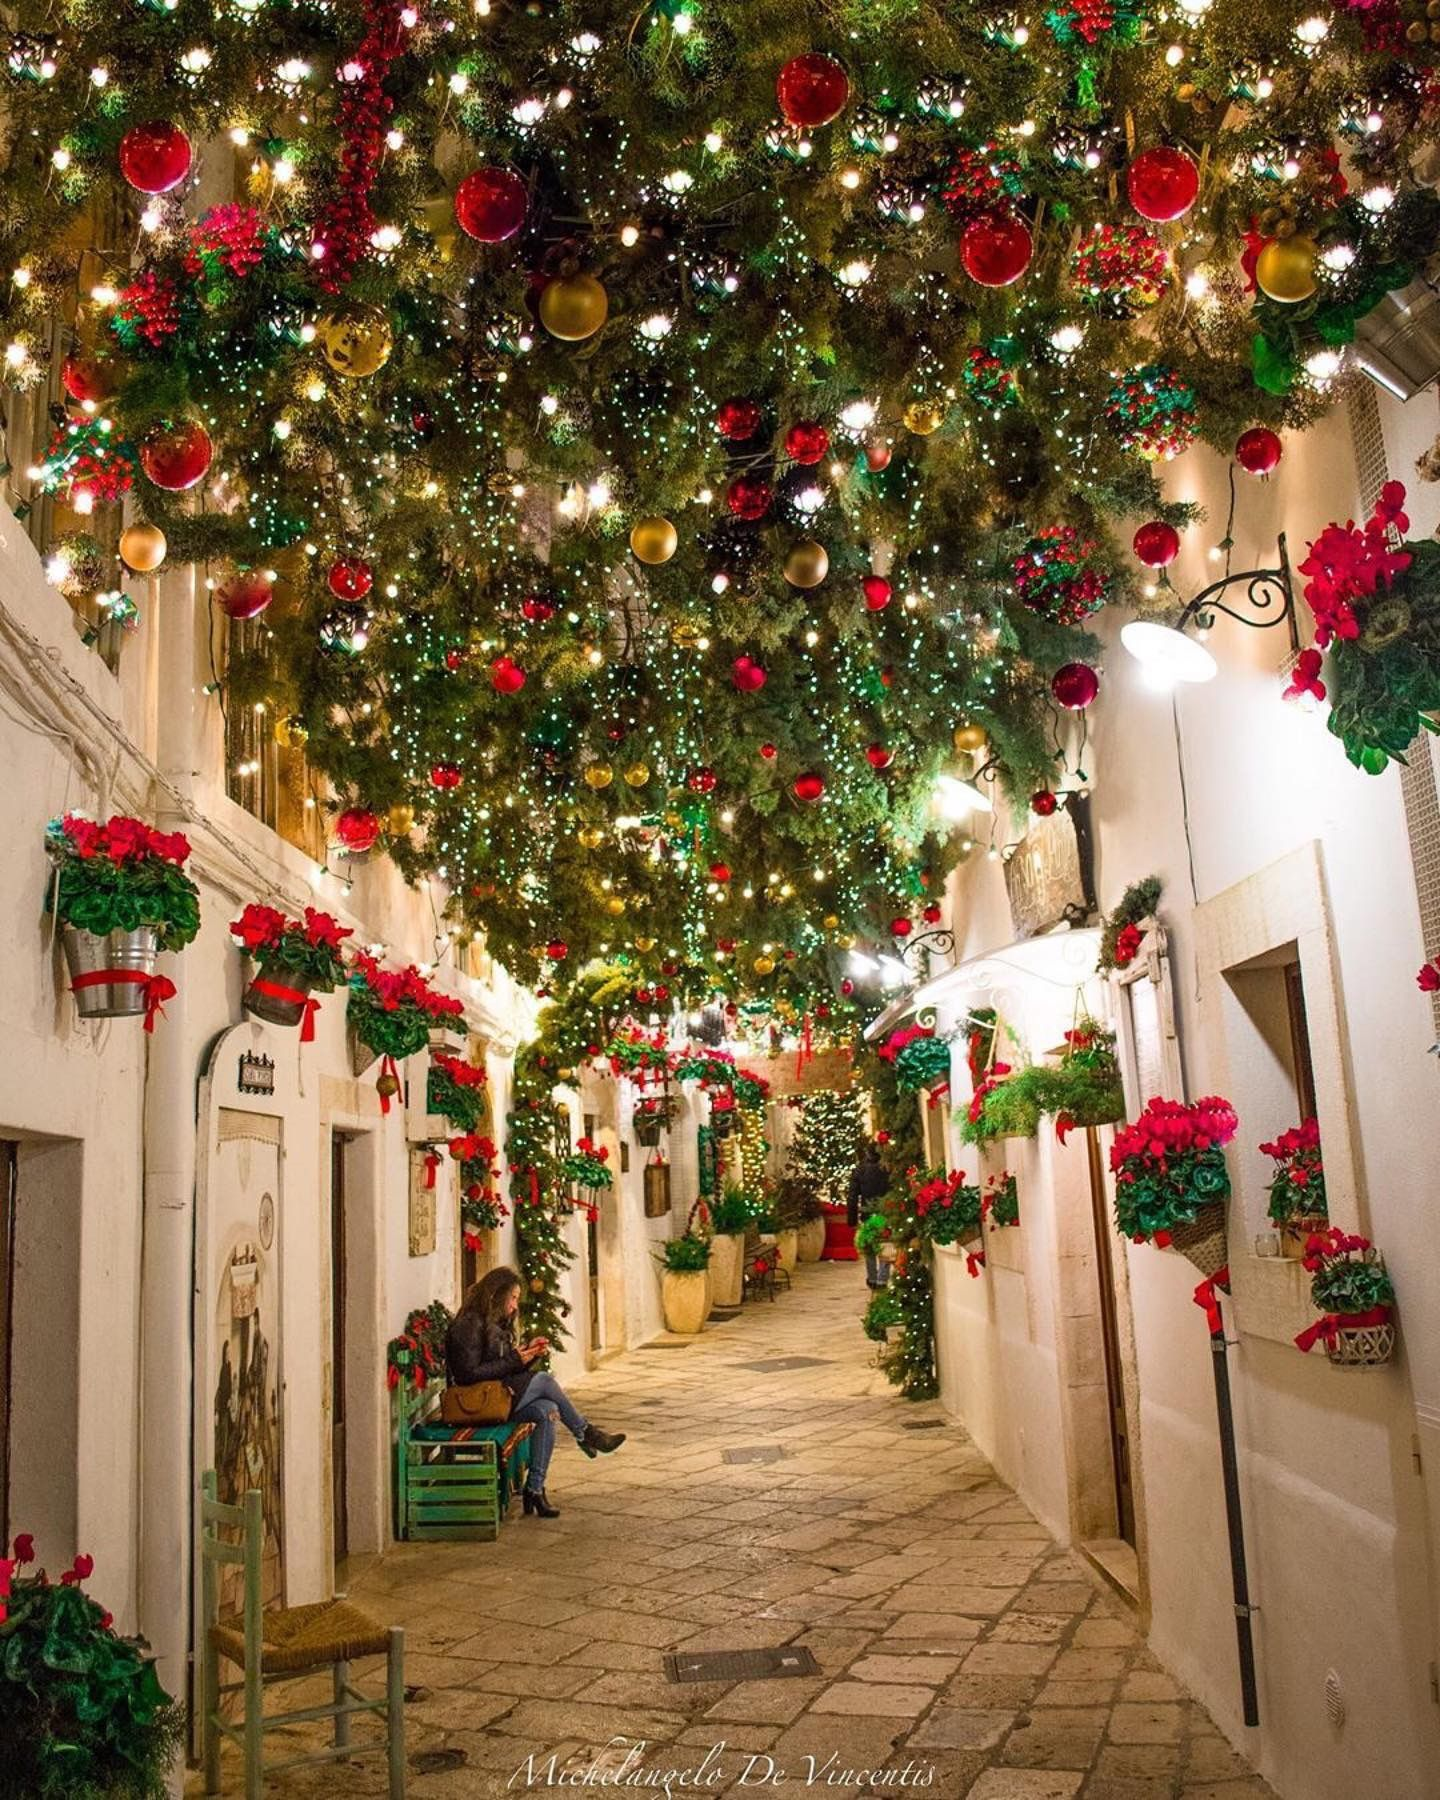 Pin By Ornaments 365 On Christmas In 2020 Christmas In Italy Decor Christmas Decorations